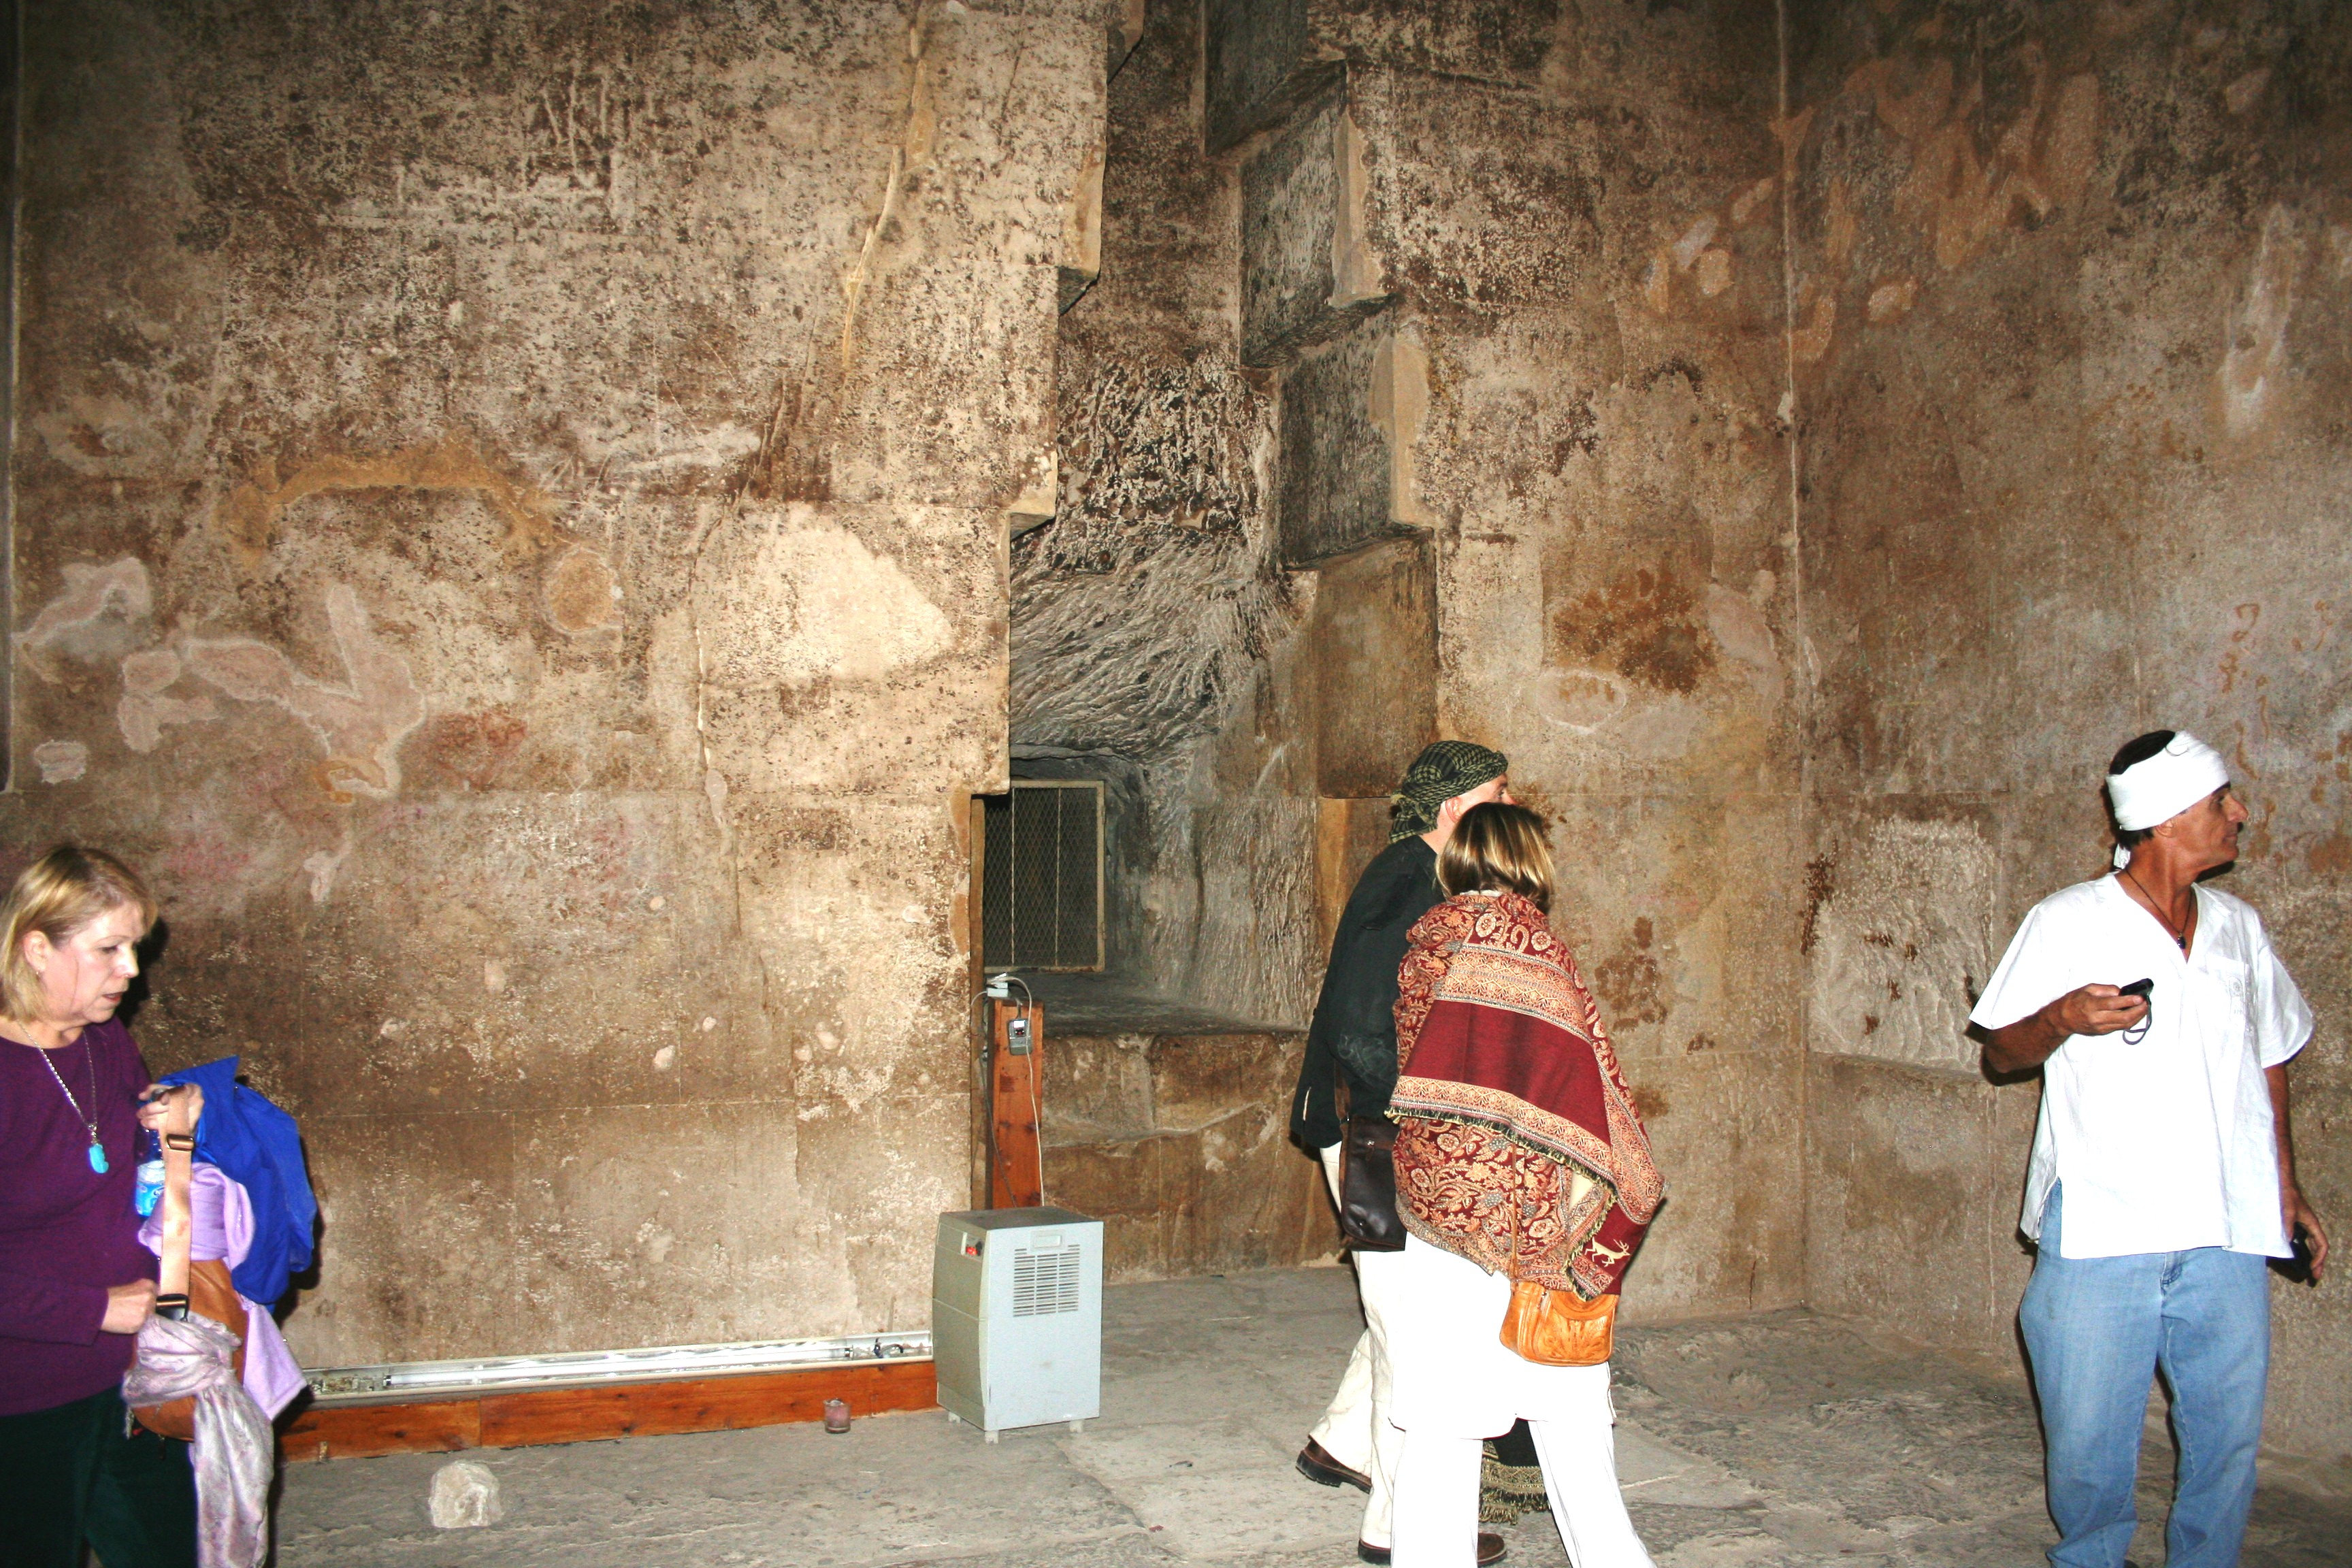 Queen's Chamber of Great Pyramid